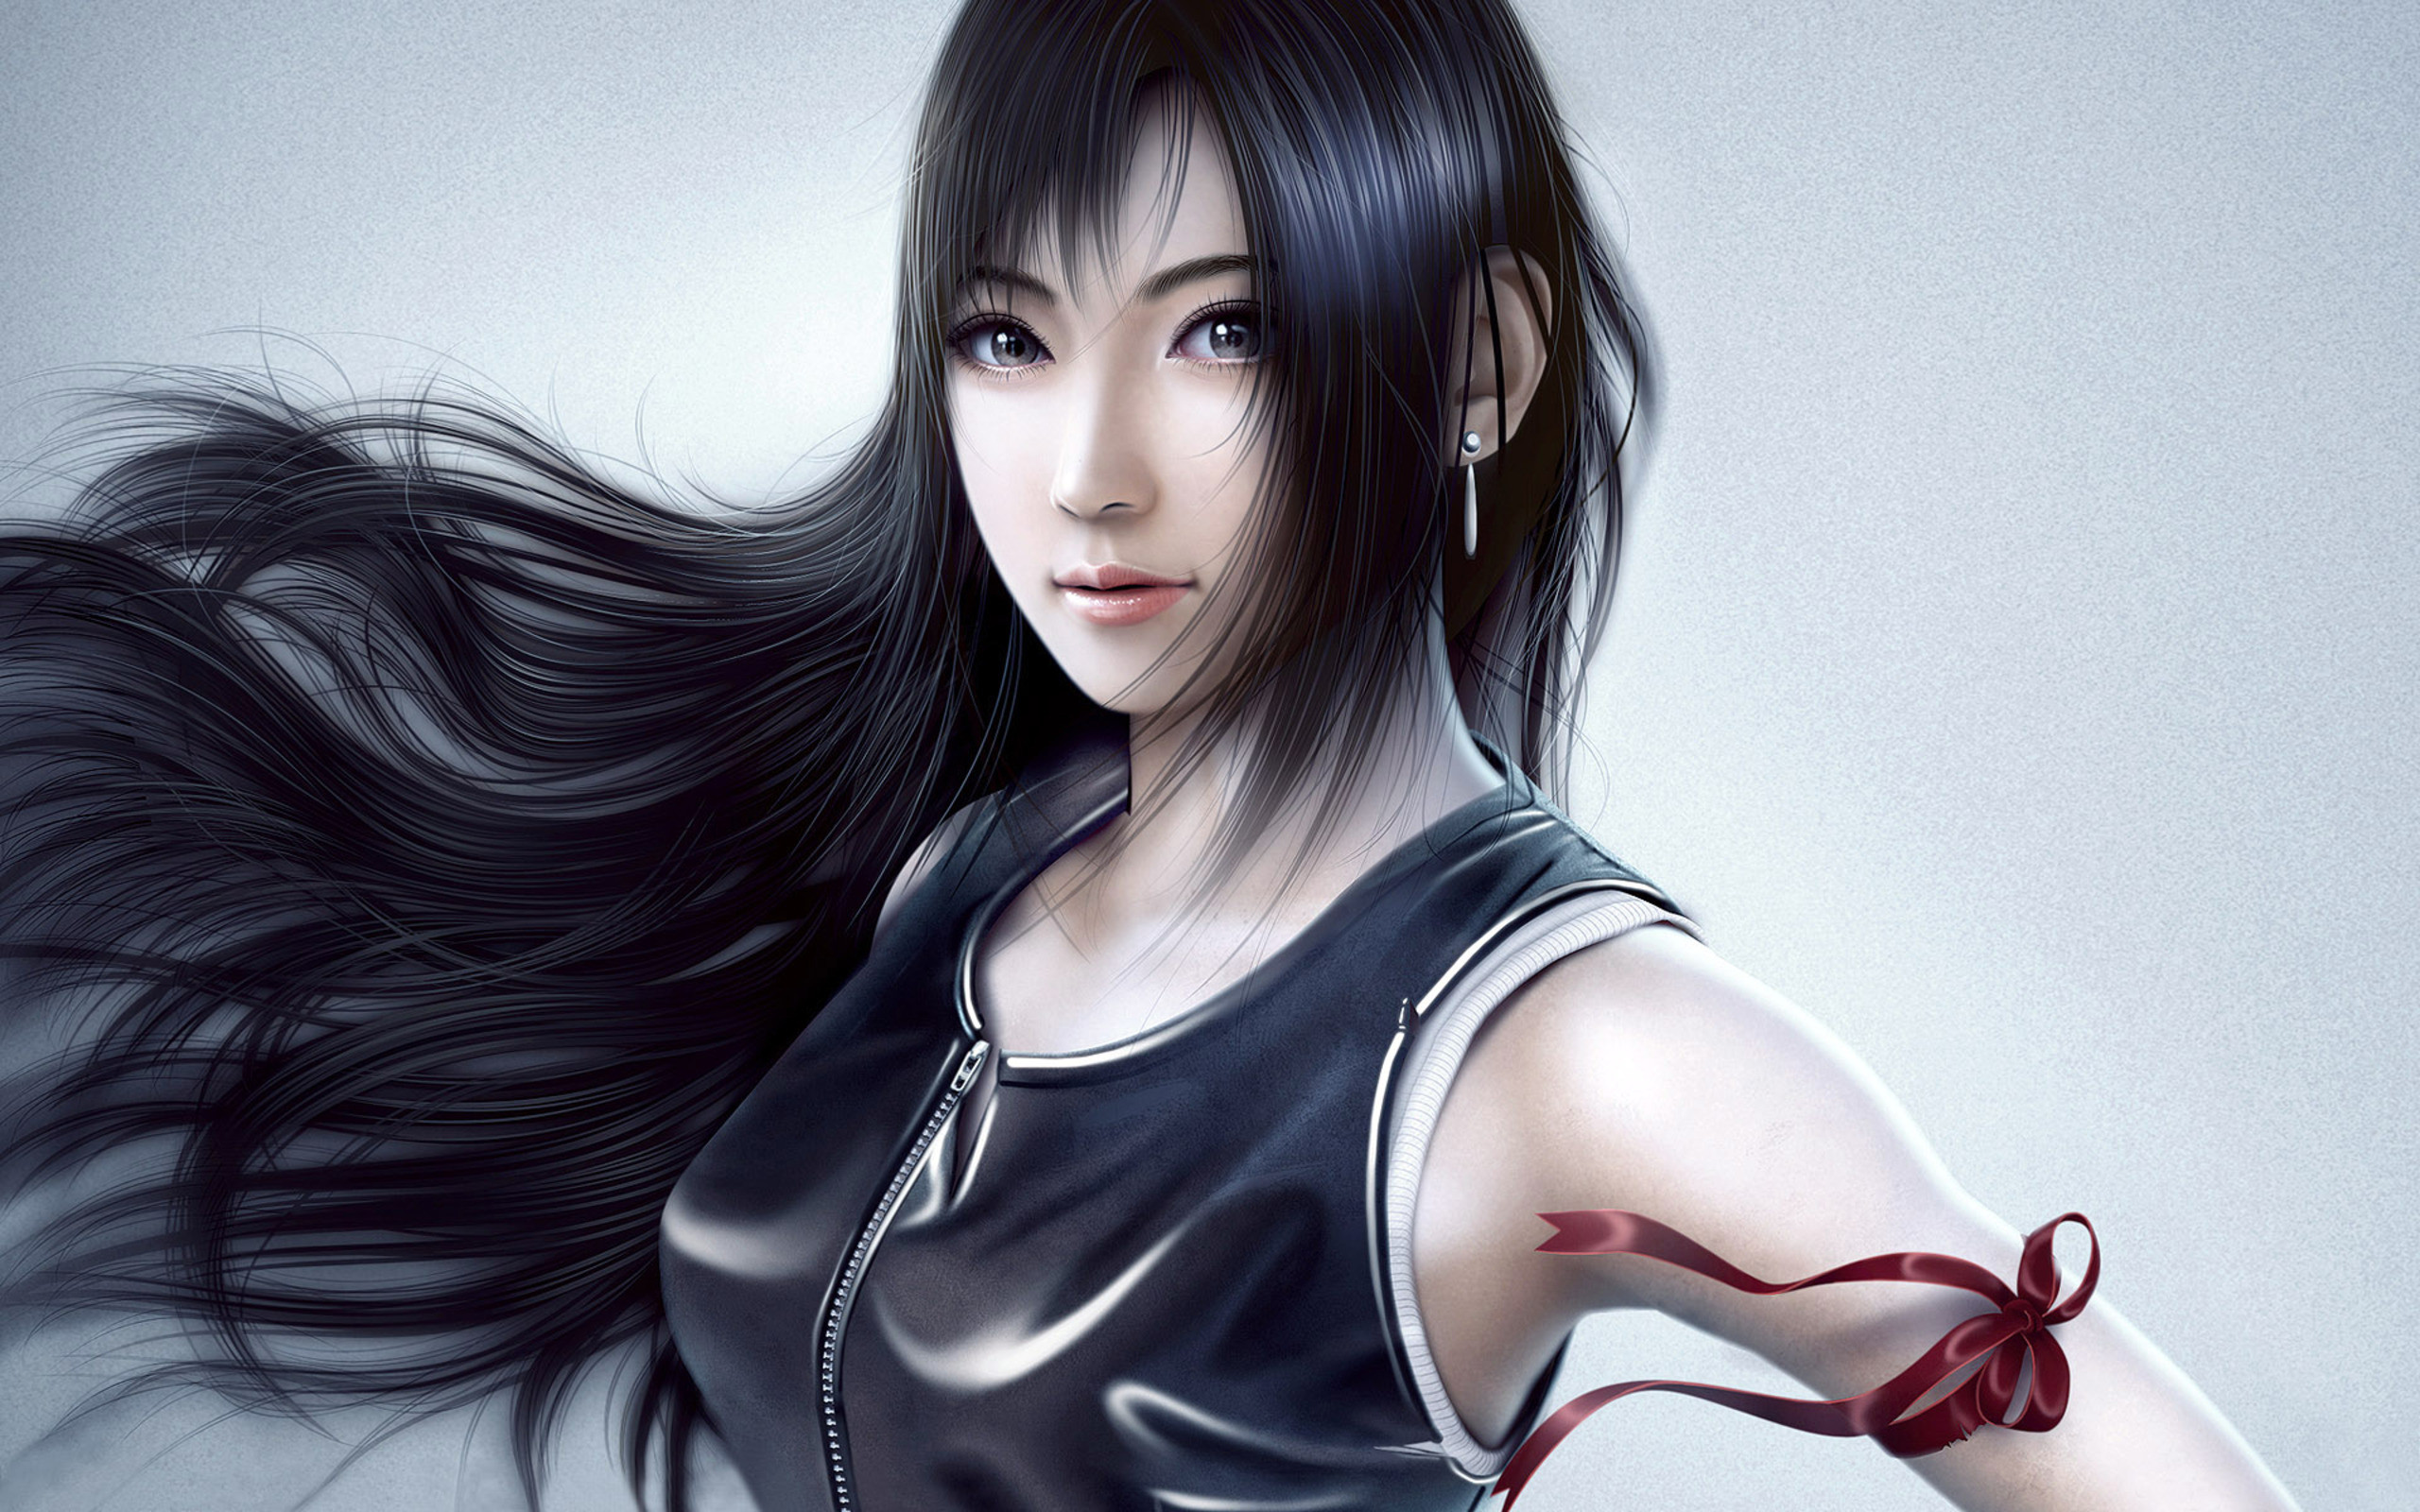 Res: 2560x1600, HD Wallpaper | Background Image ID:239090